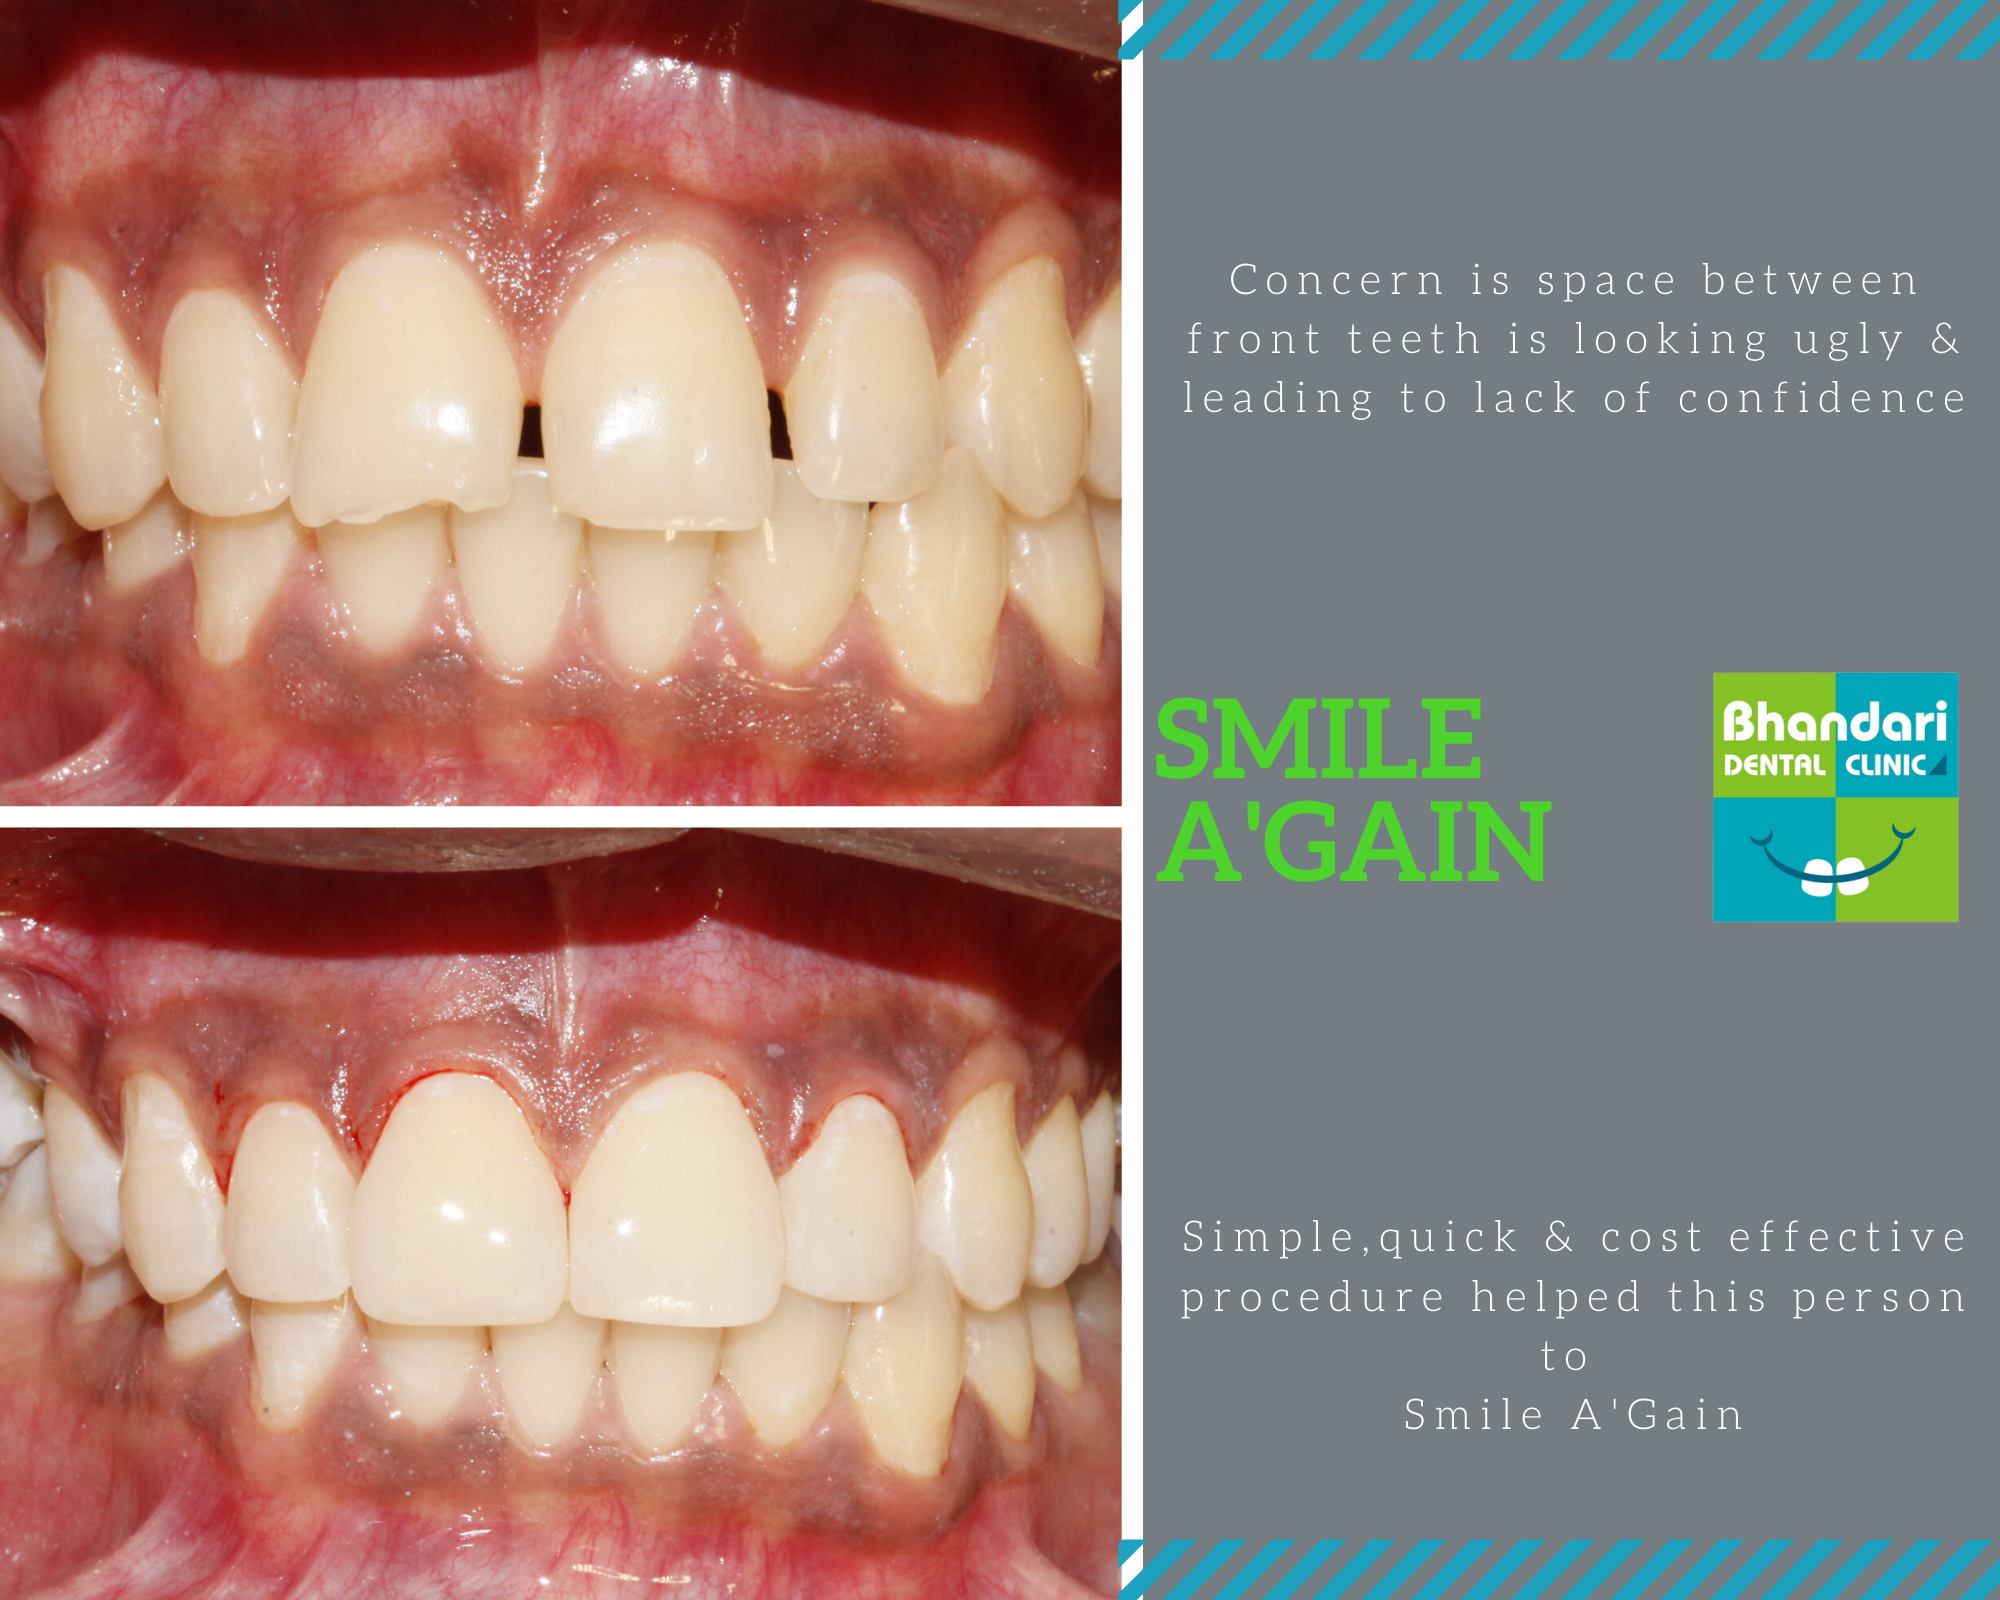 Smile makeover at Bhandari Dental clinic